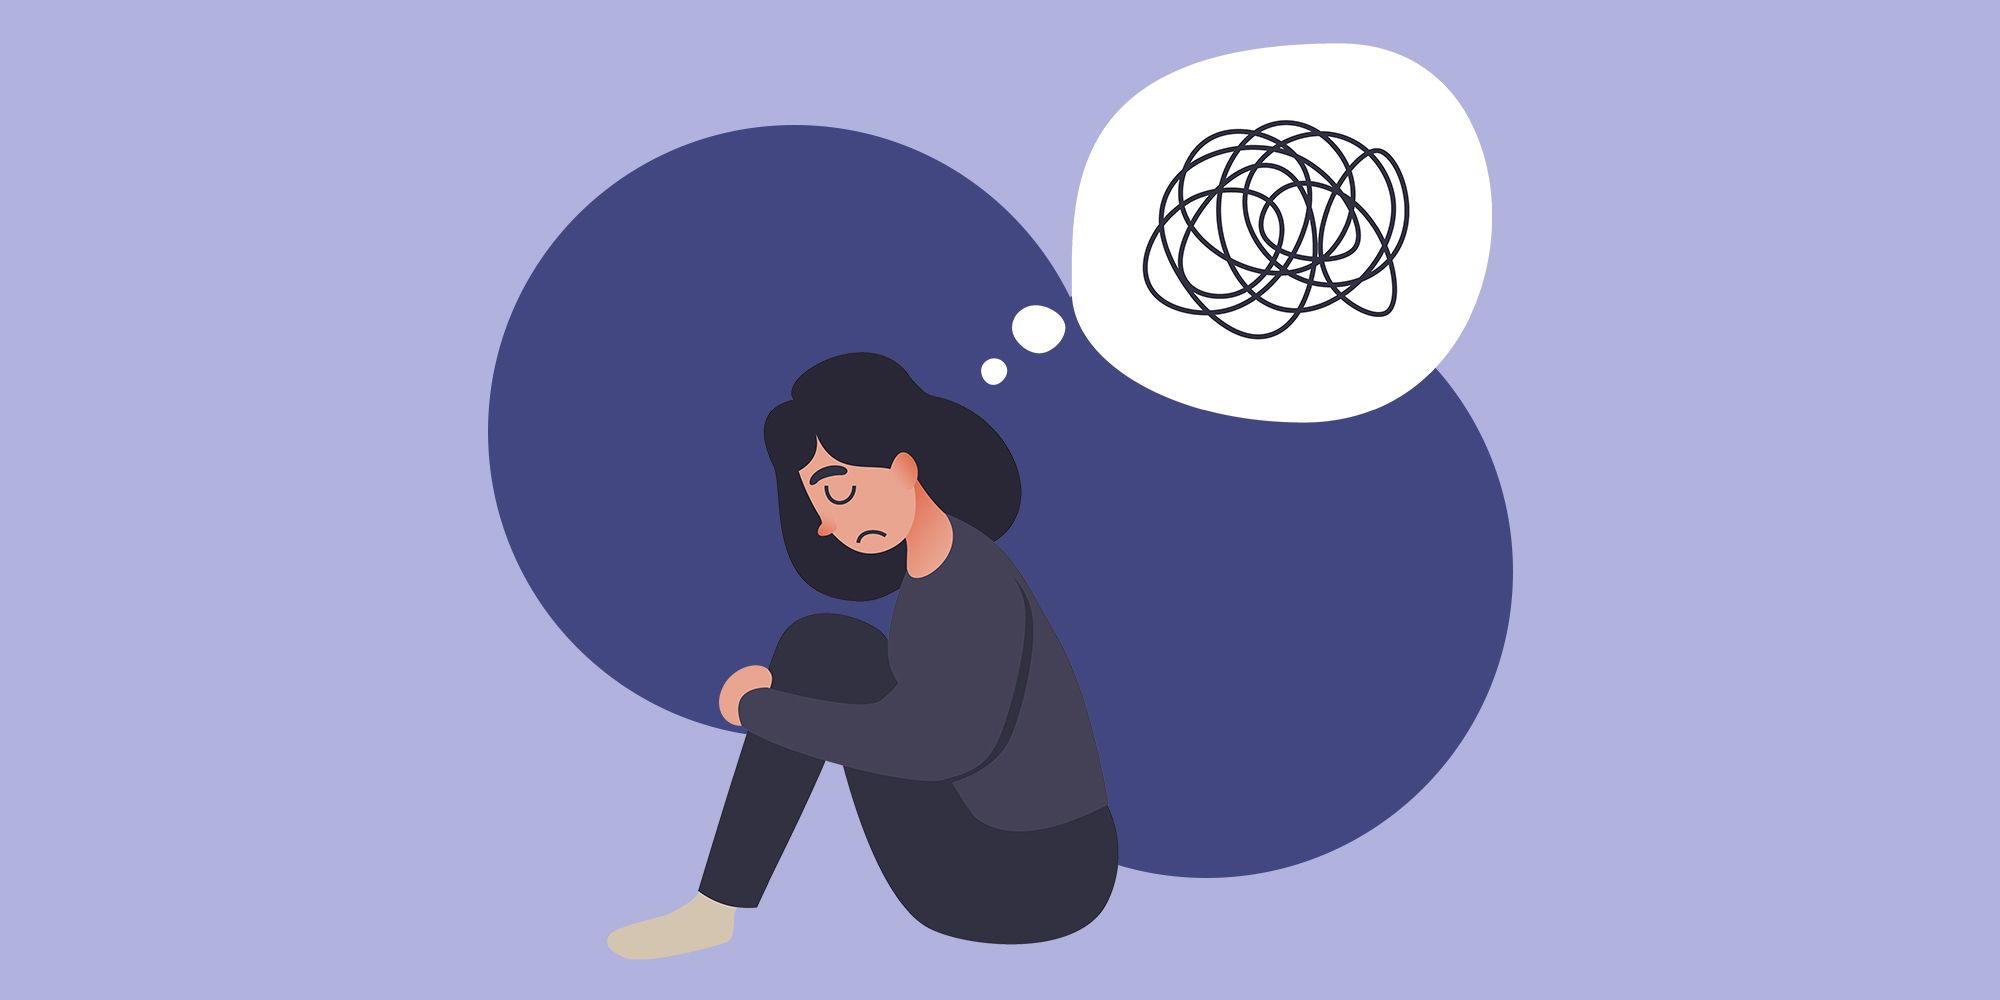 Dealing with stress and anxiety during coronavirus